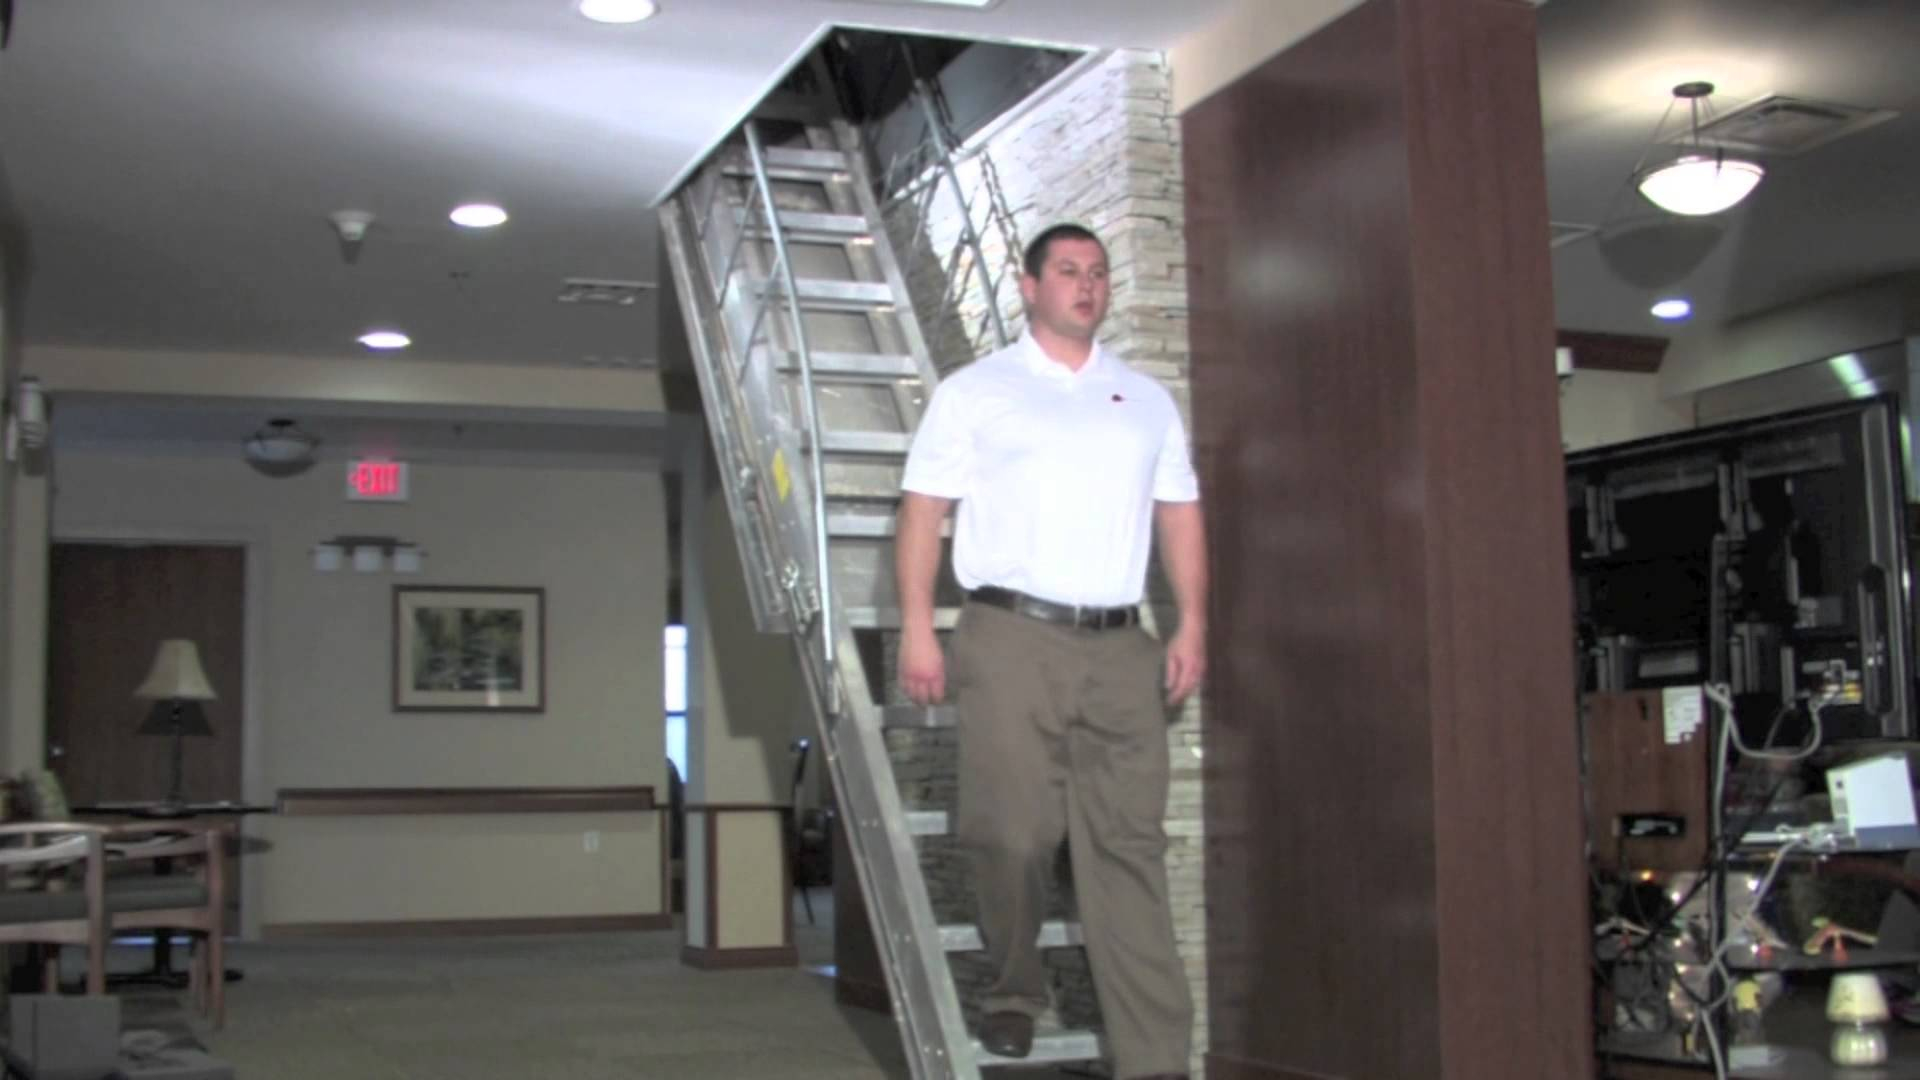 Precision Ladders Automatic Electric Disappearing Attic Stairs pertaining to dimensions 1920 X 1080